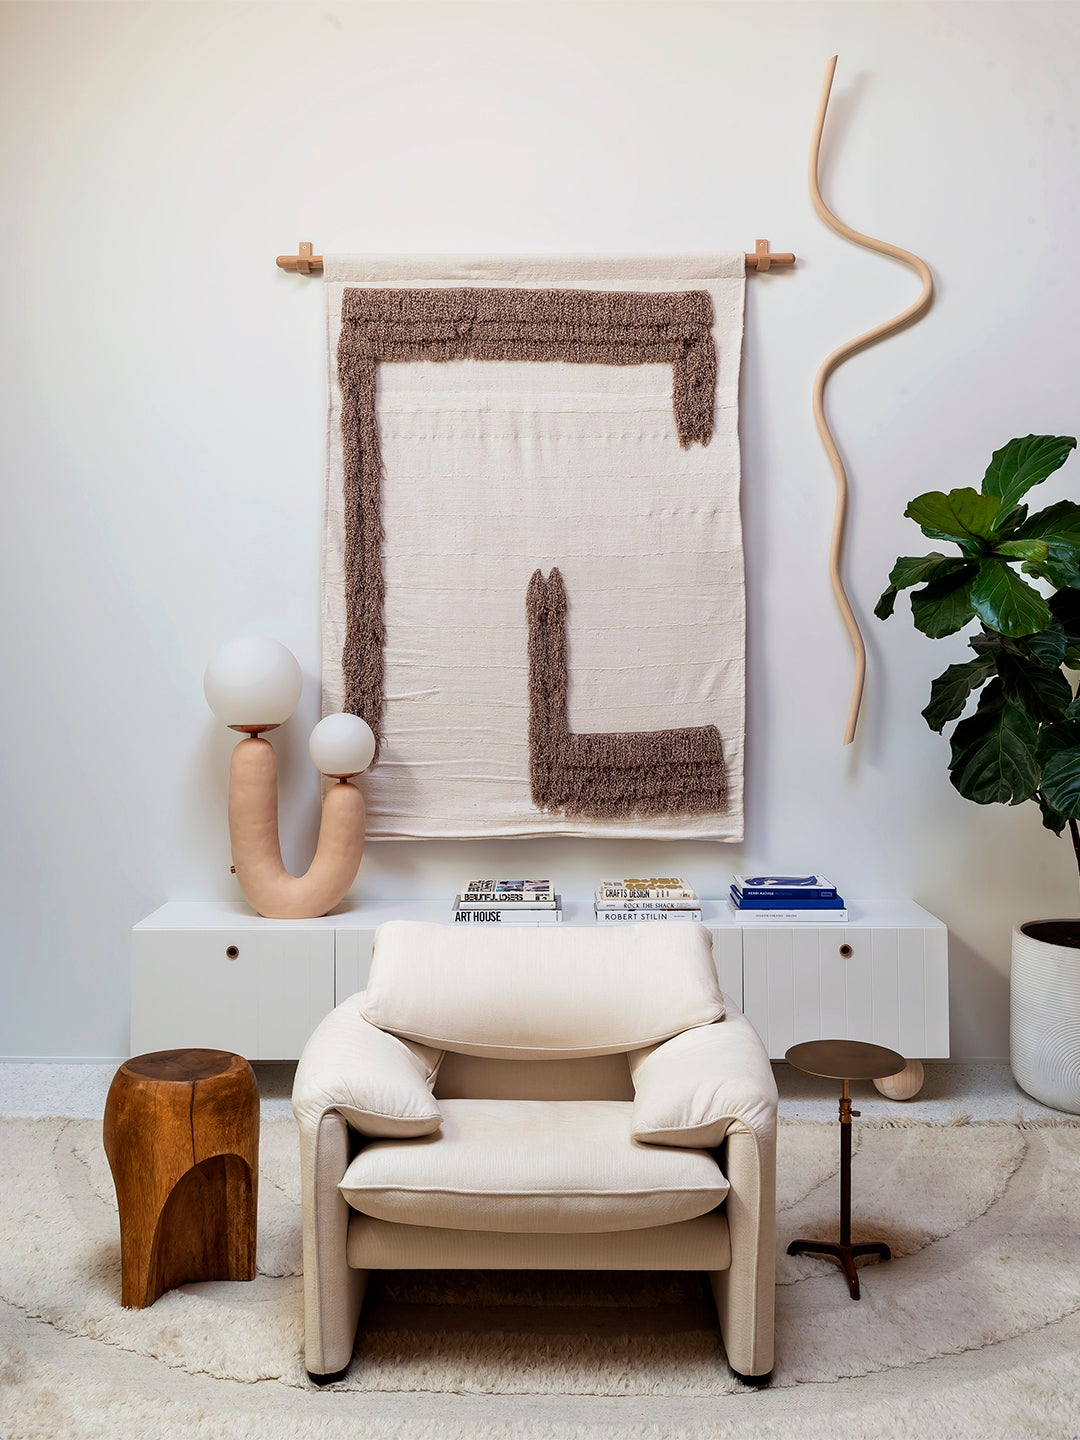 whtie chair with abstract lighting